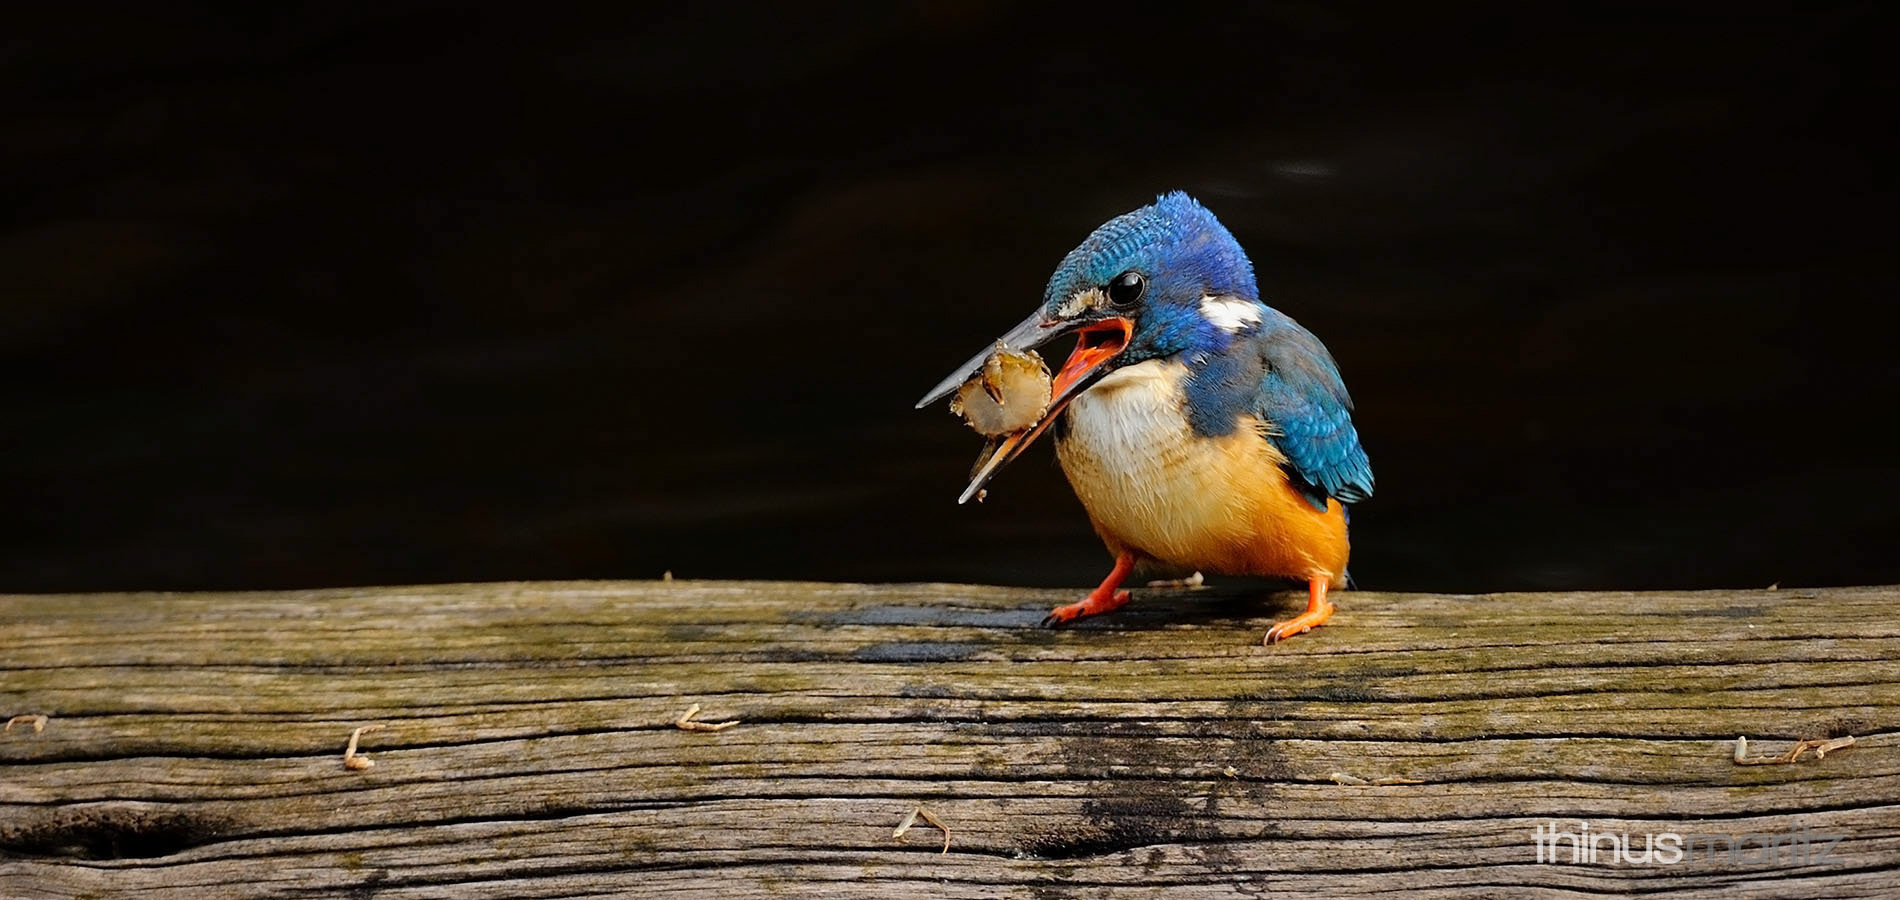 wildlife-halfcollared-kingfisher